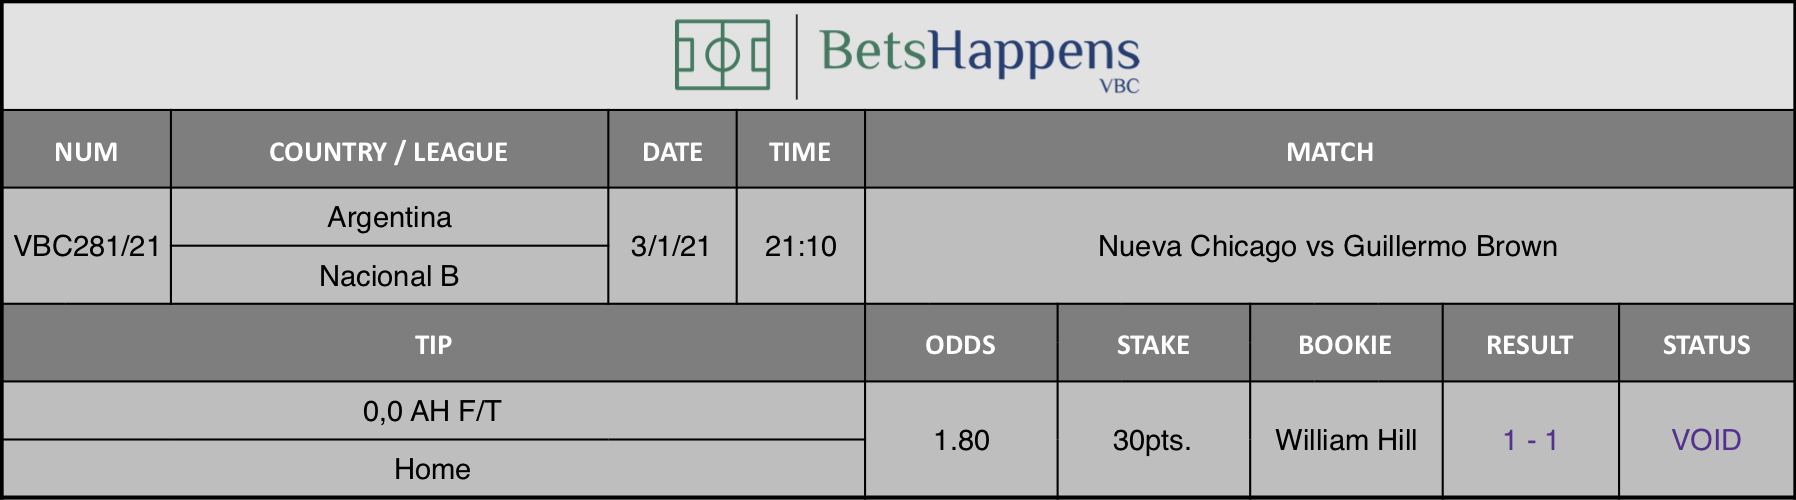 Results of our tip for the Nueva Chicago vs Guillermo Brown match where 0,0 AH F/T  Home is recommended.